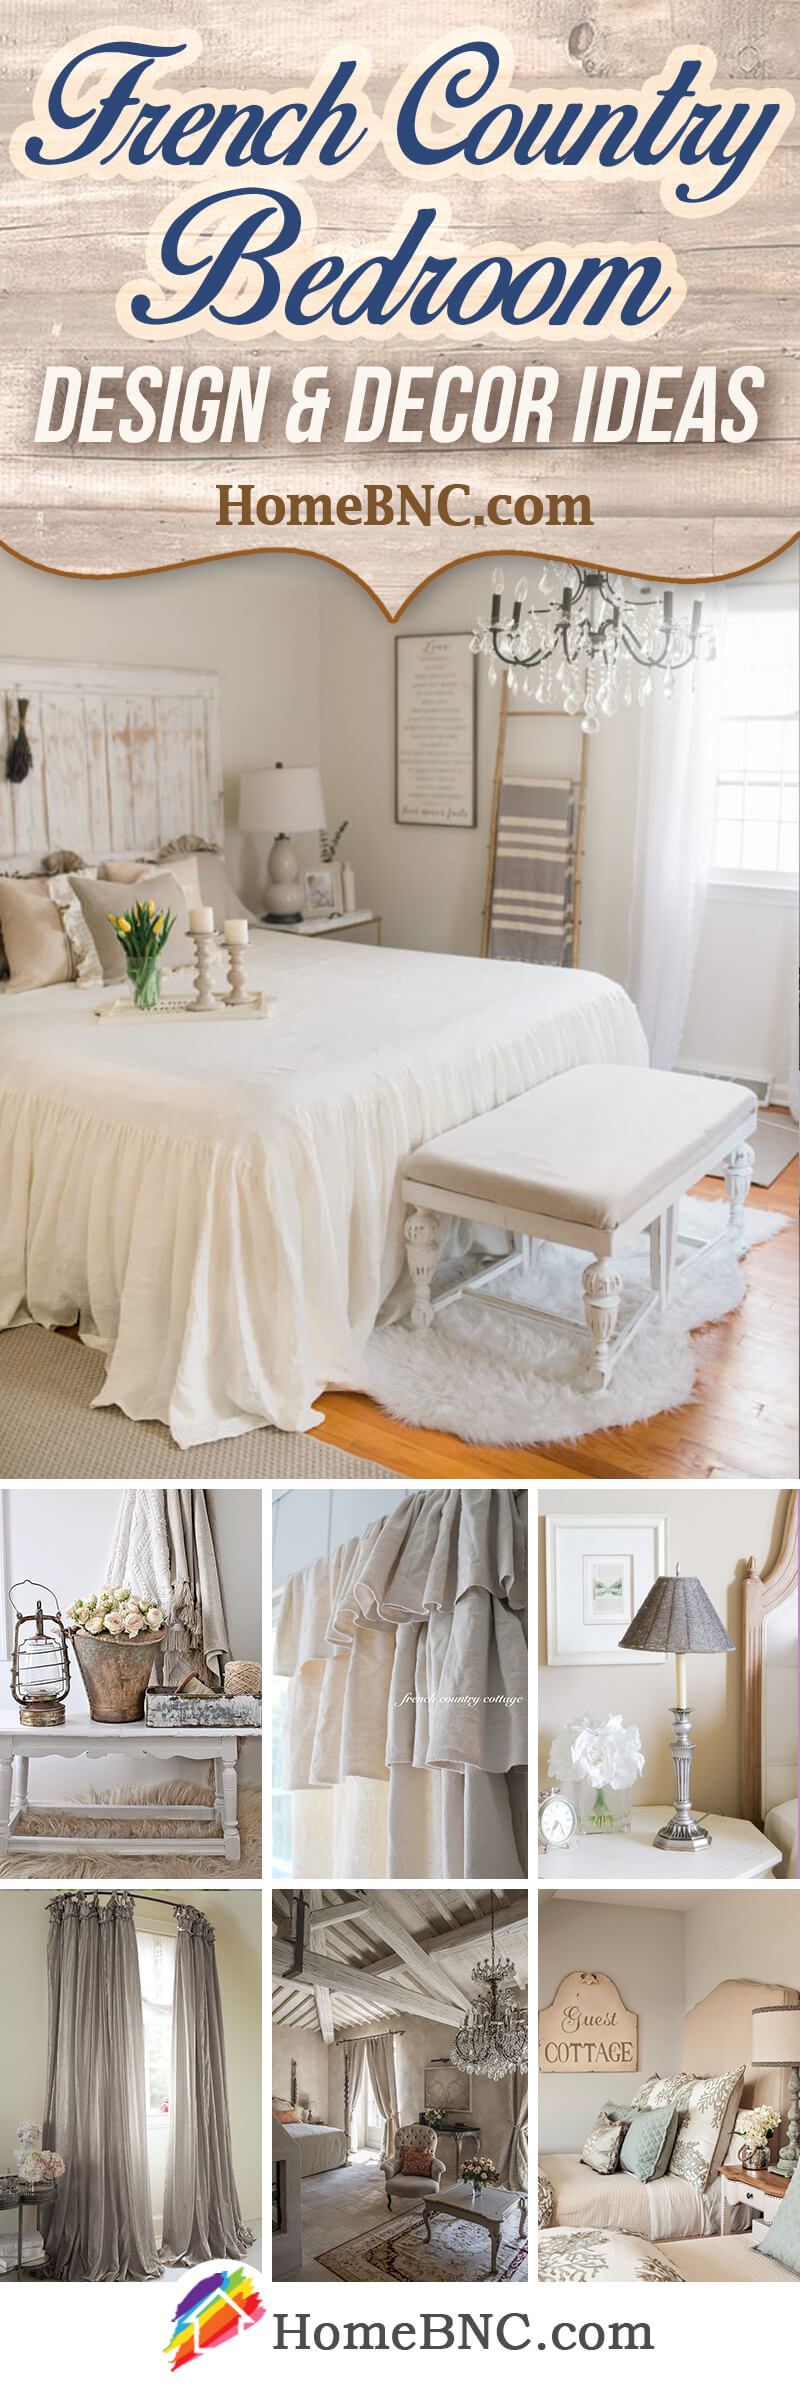 30 best french country bedroom decor